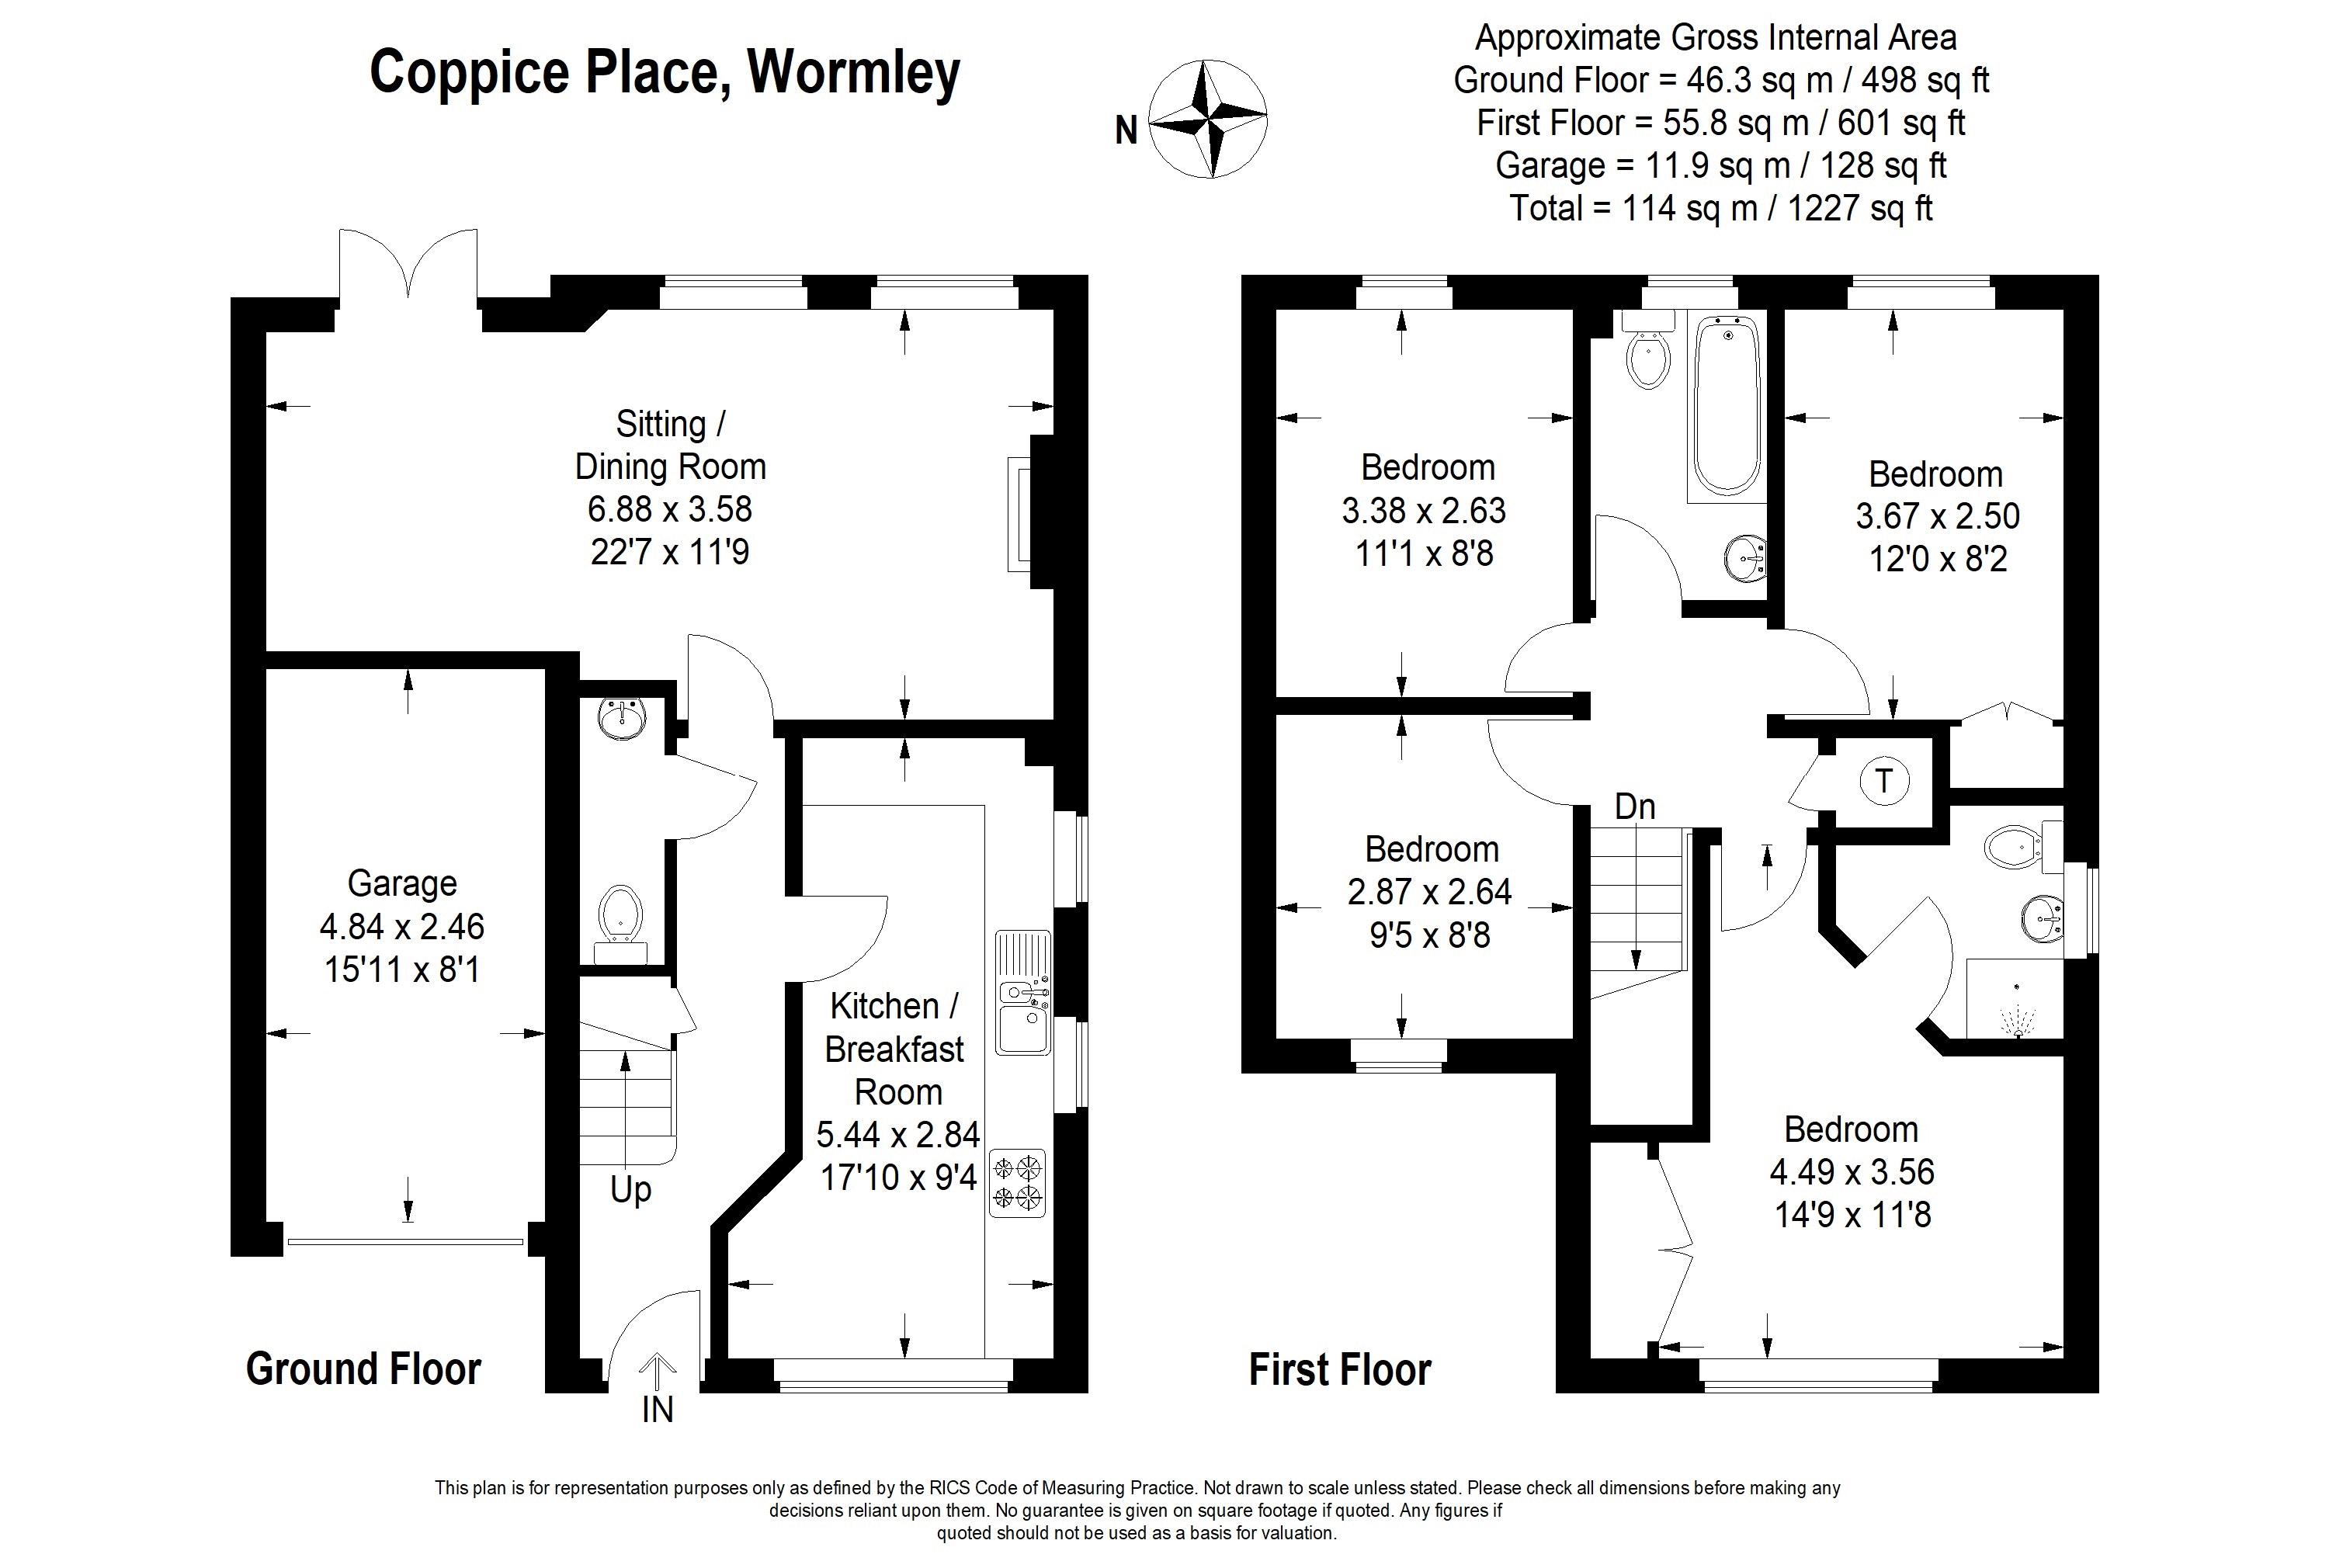 Coppice Place Wormley